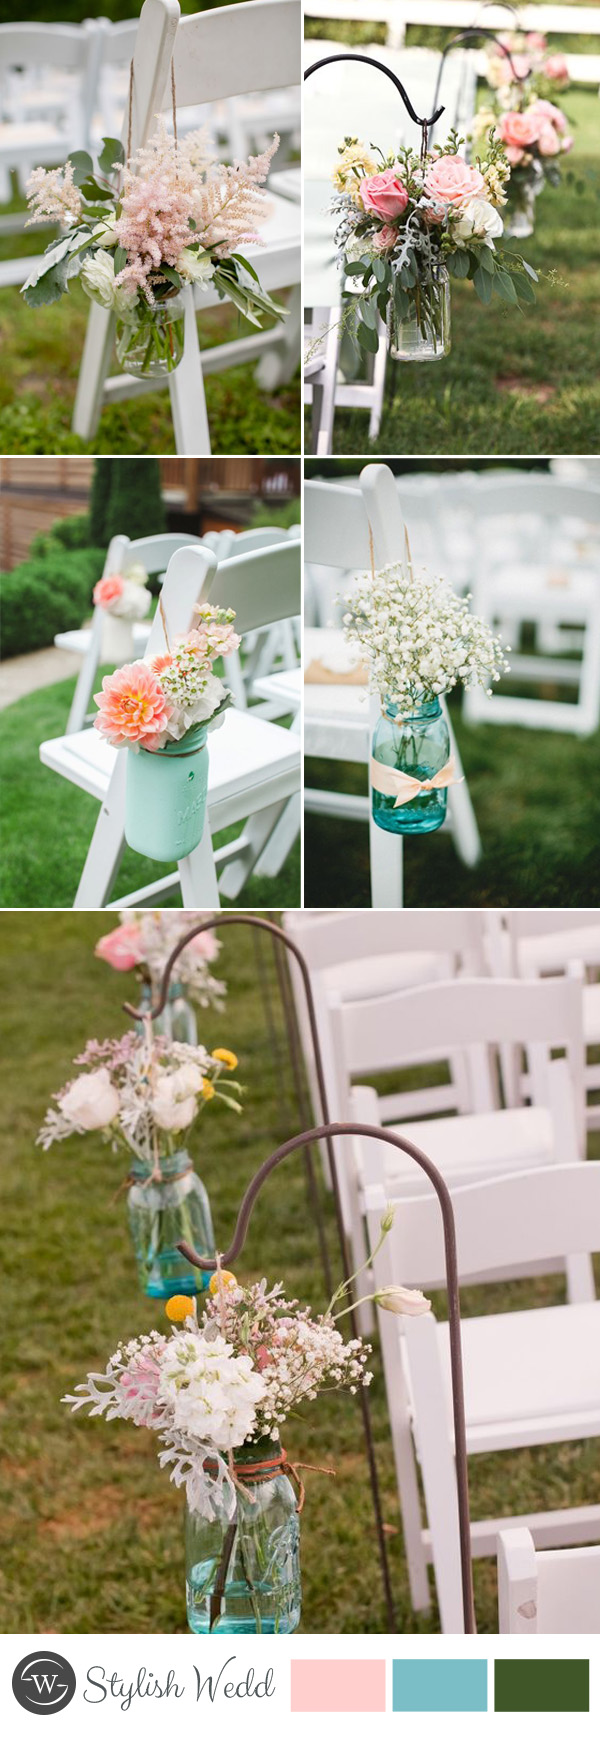 wedding chair decor 50 great ways to decorate your weddding chair stylish 8951